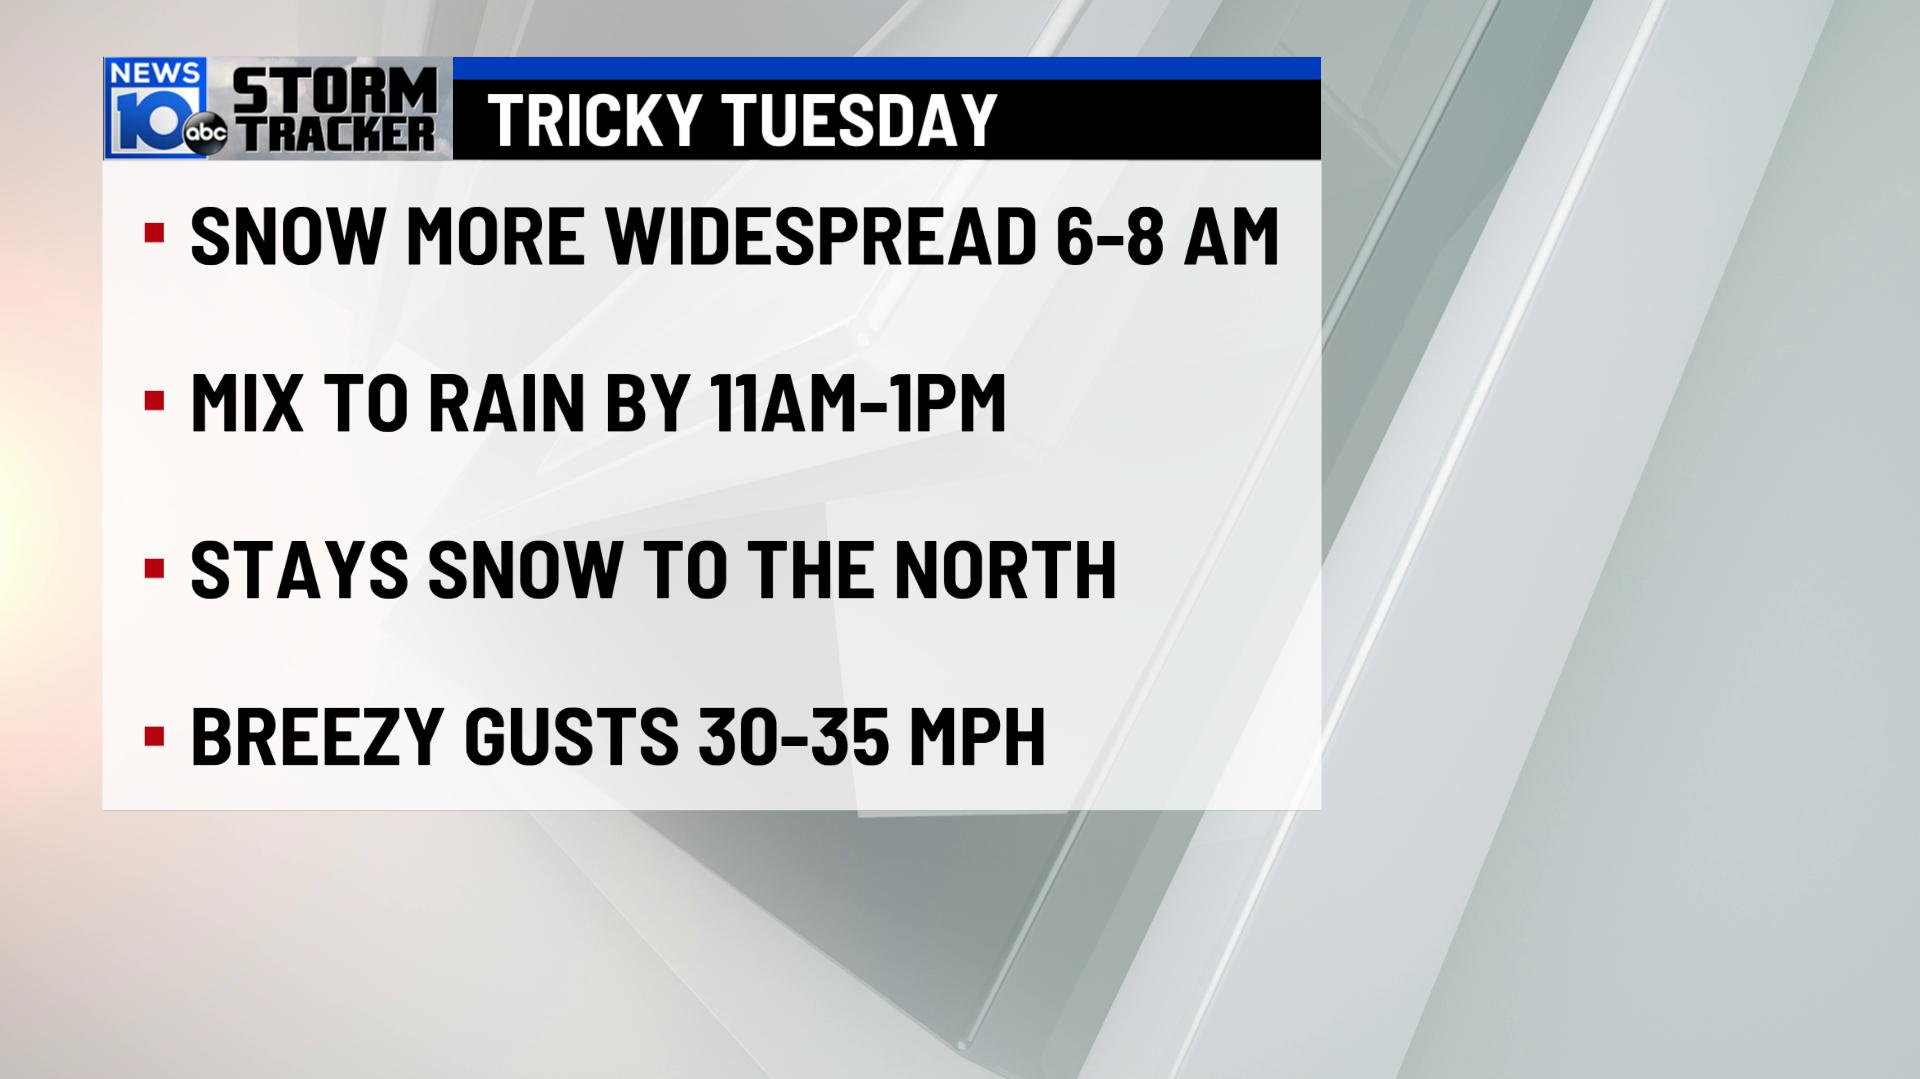 2/18/2020: Transitional Tuesday with Snow, Mix to Rain?